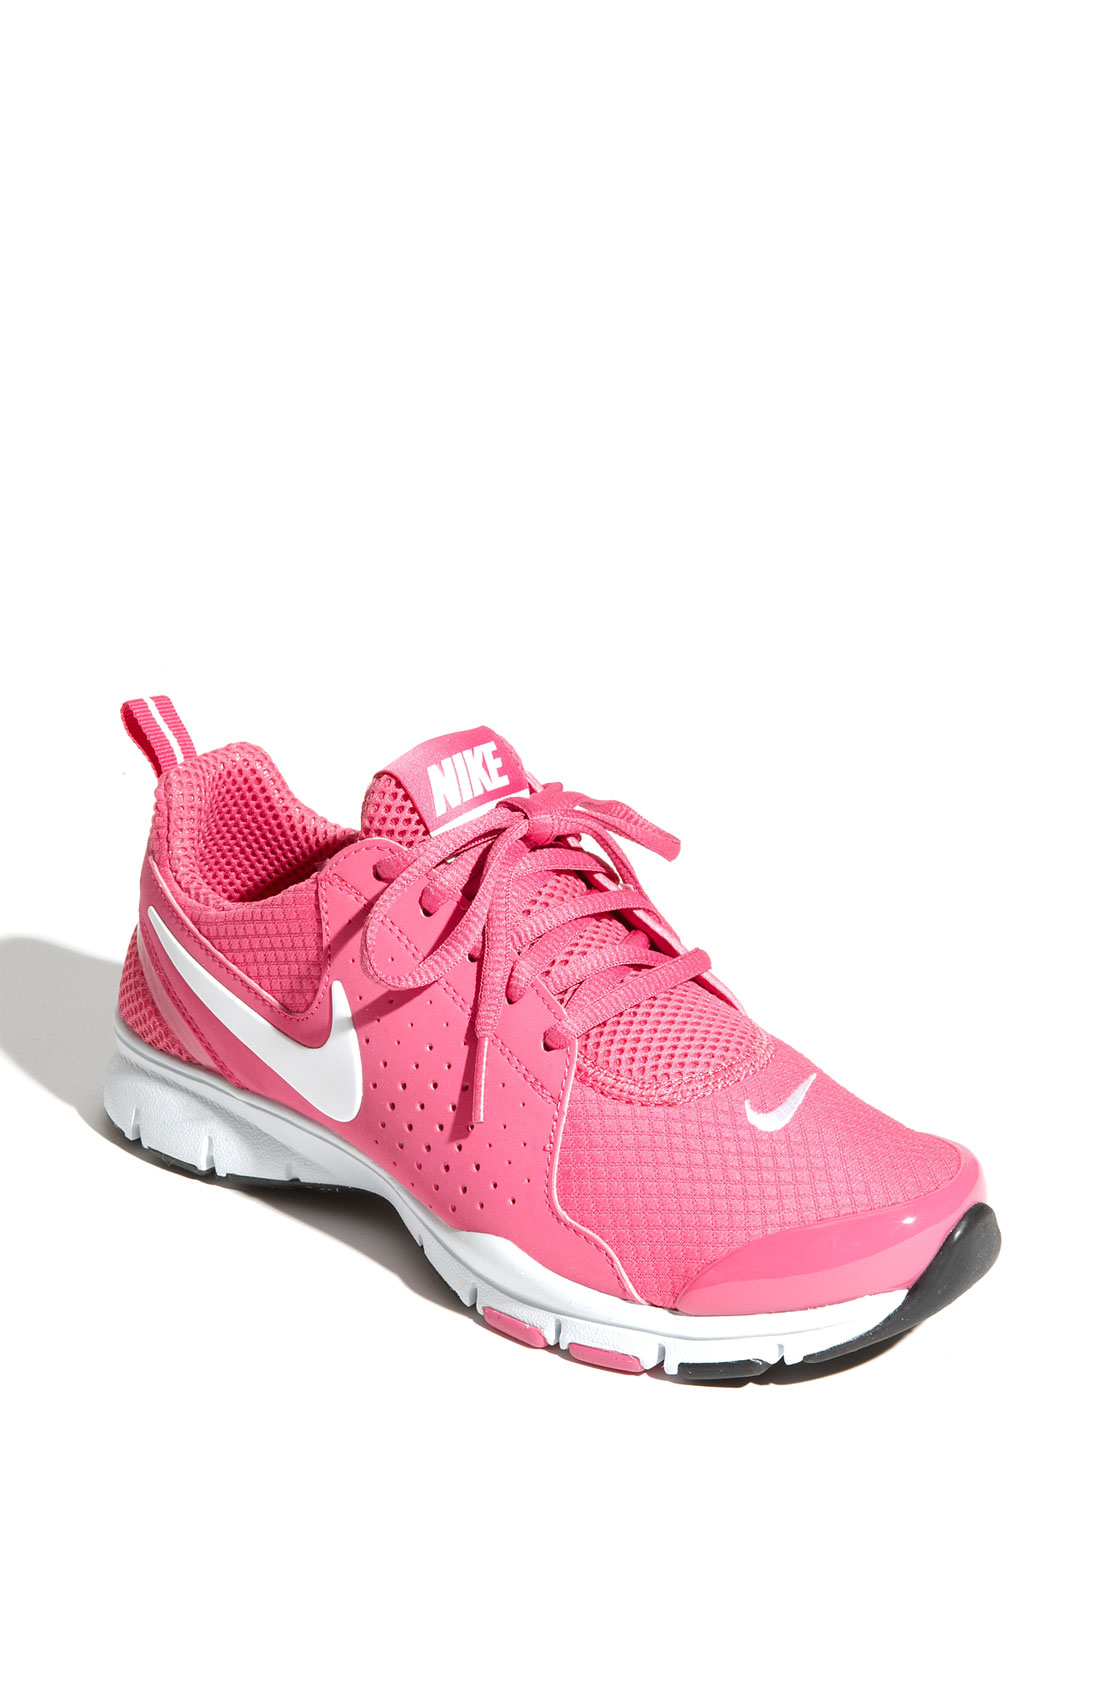 Pink Nike Training Shoes